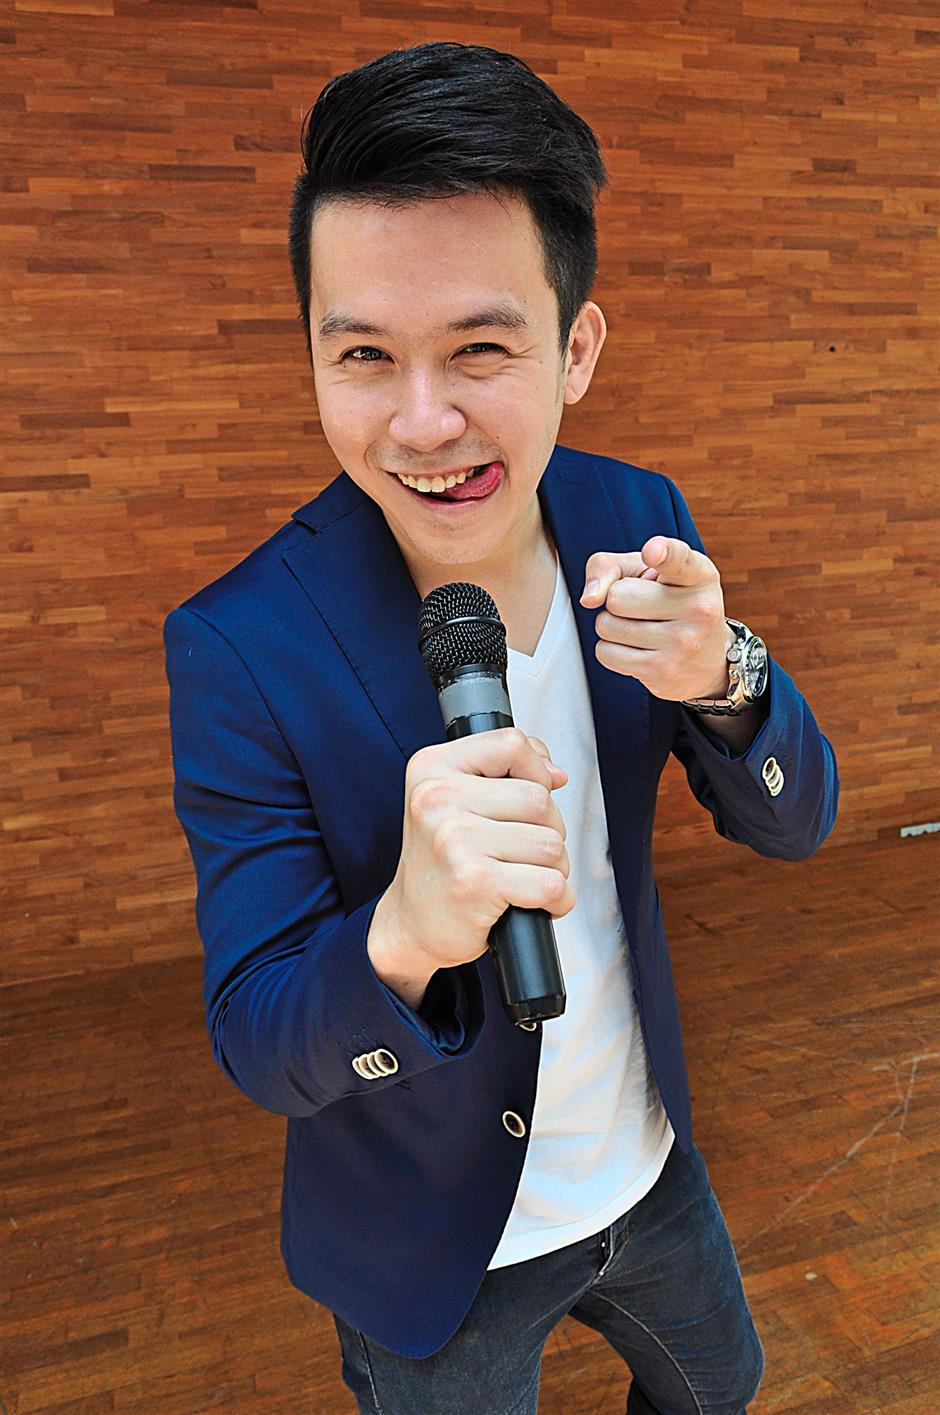 Emcee Arthur Tan says the business is about bringing joy to others.